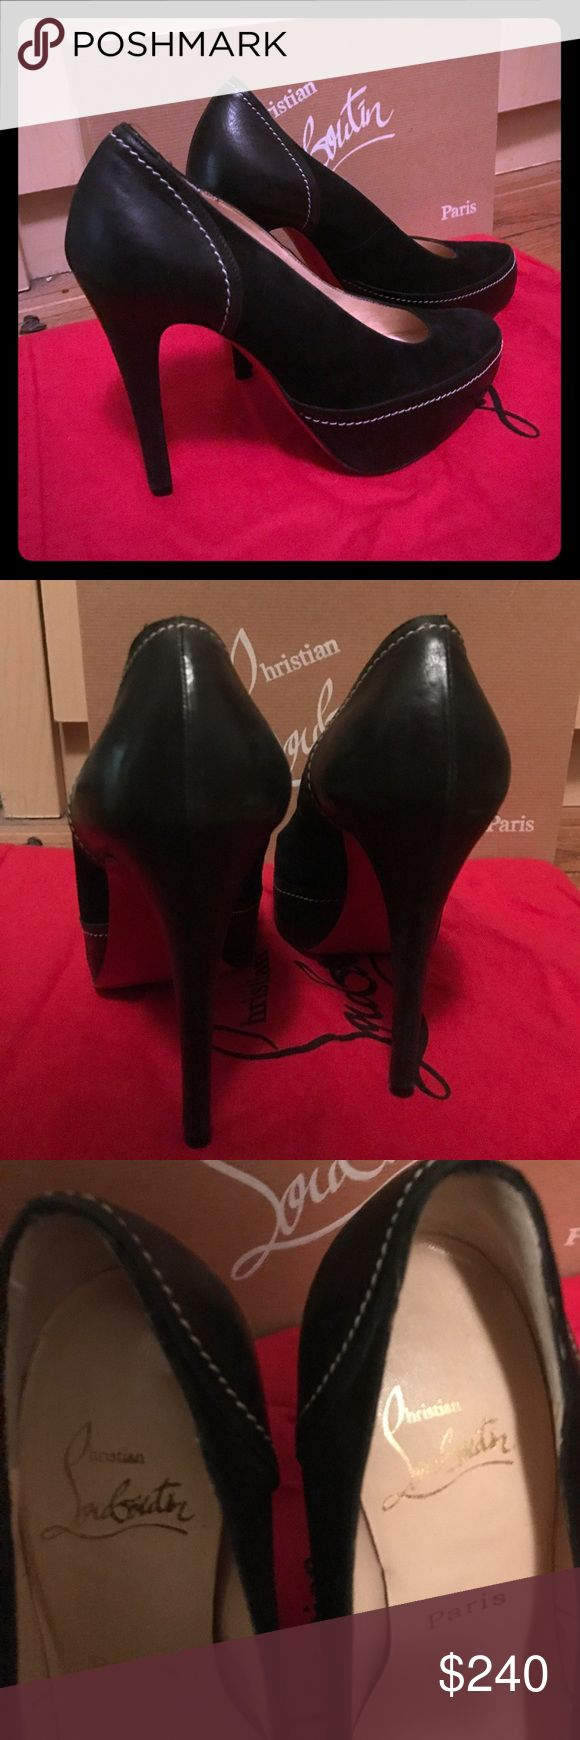 Christian louboutin Heels 100% authentic Christian Louboutin black Heels in excellent condition! Christian Louboutin Shoes Heels